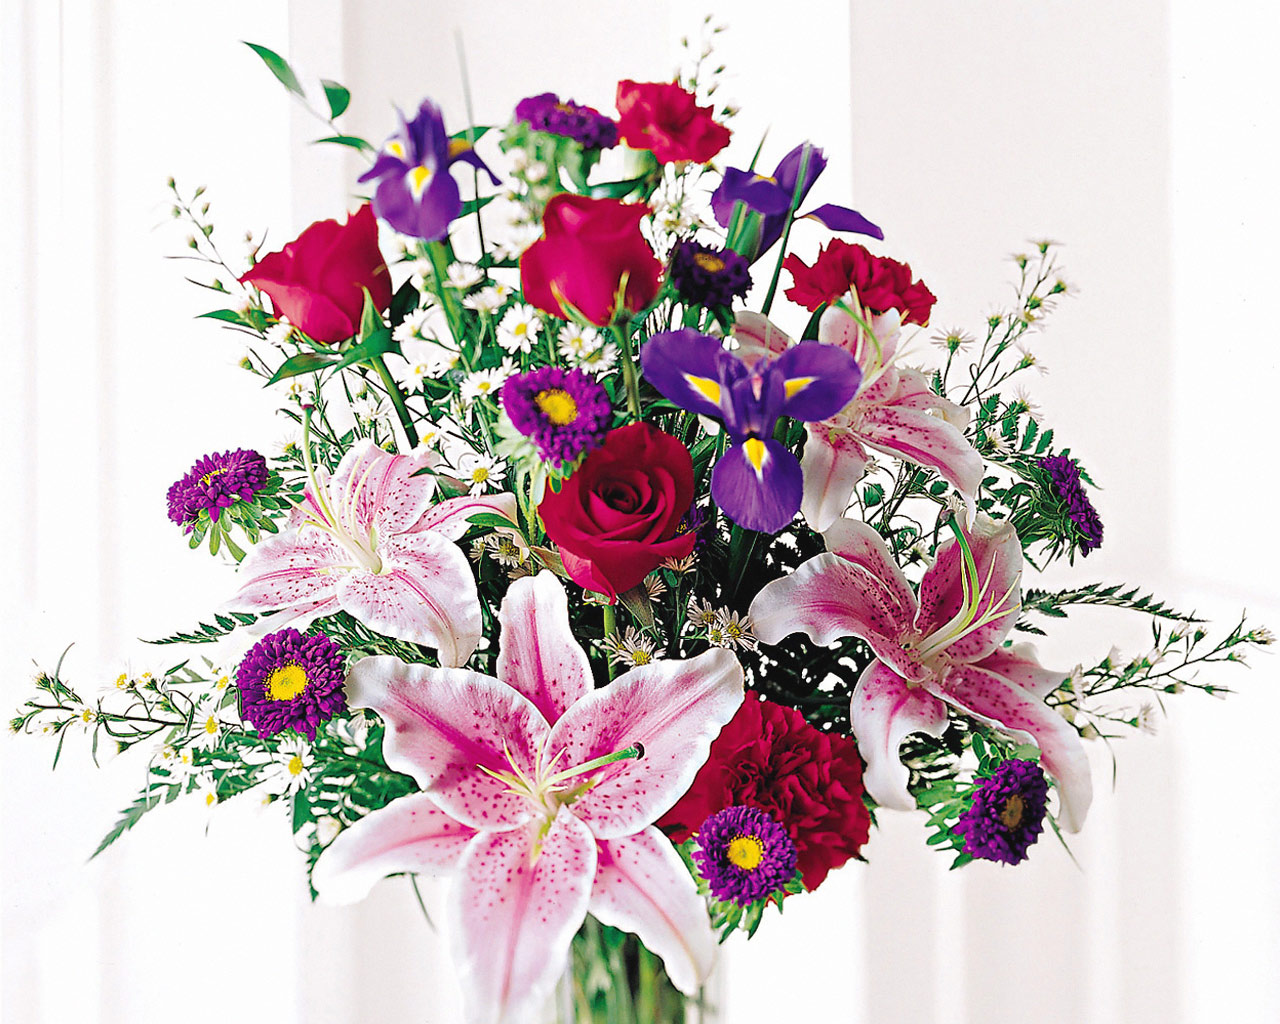 184-Stunning-Beauty-Bouquet---Roses,-Iris,-Stargazer-Lilies,-Carnations,-Asters